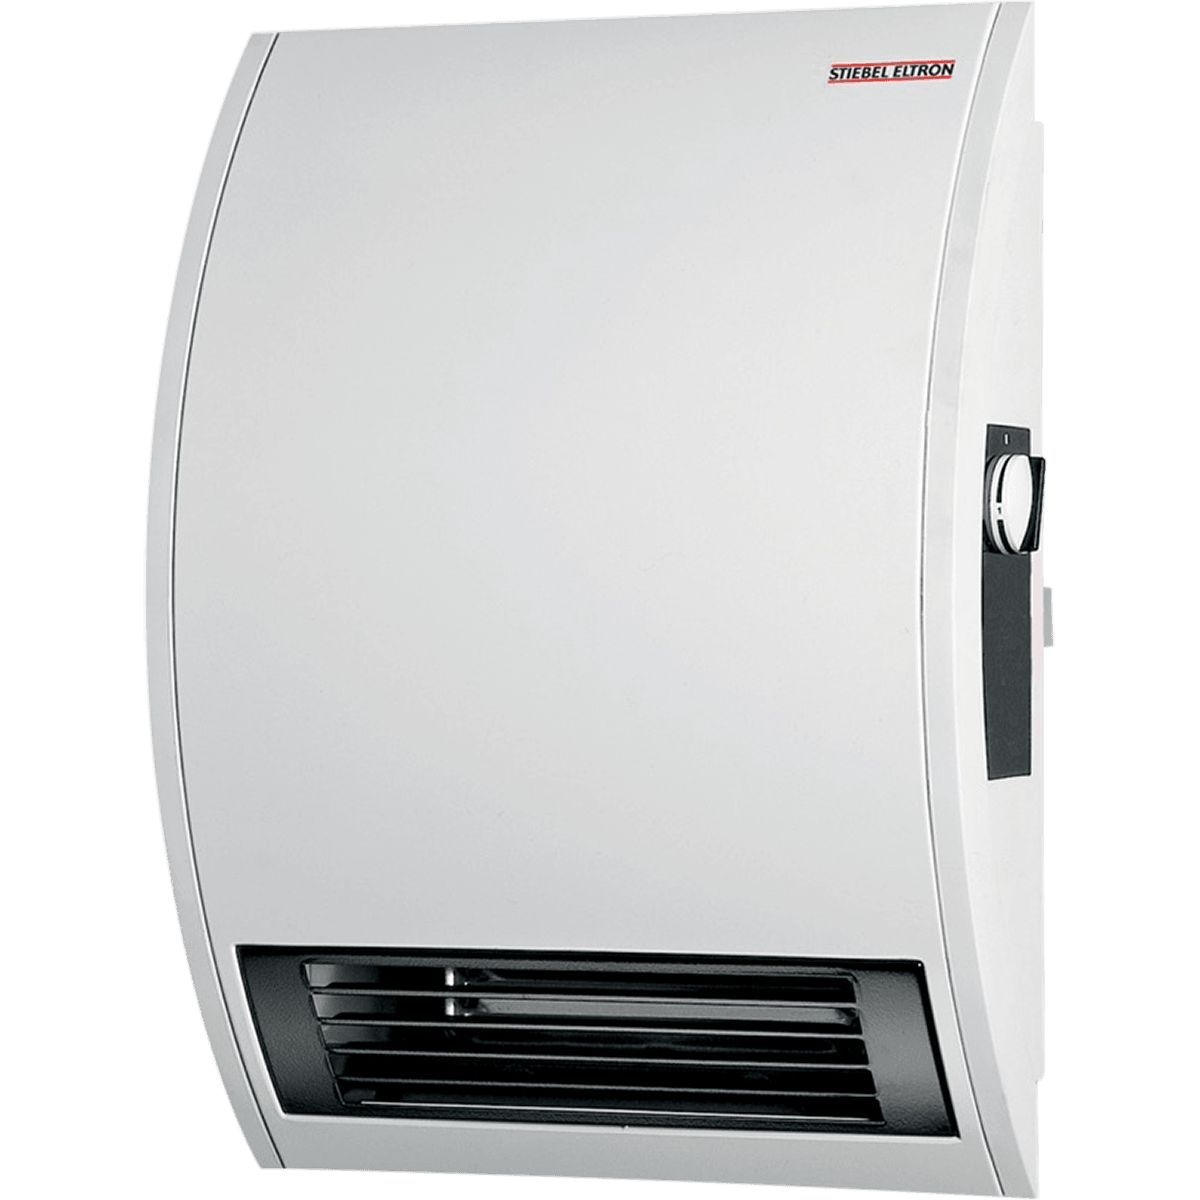 Stiebel Eltron Ck 15e 120v Electric Wall Mounted Fan Heater Wall Mounted Fan Bathroom Heater Heater